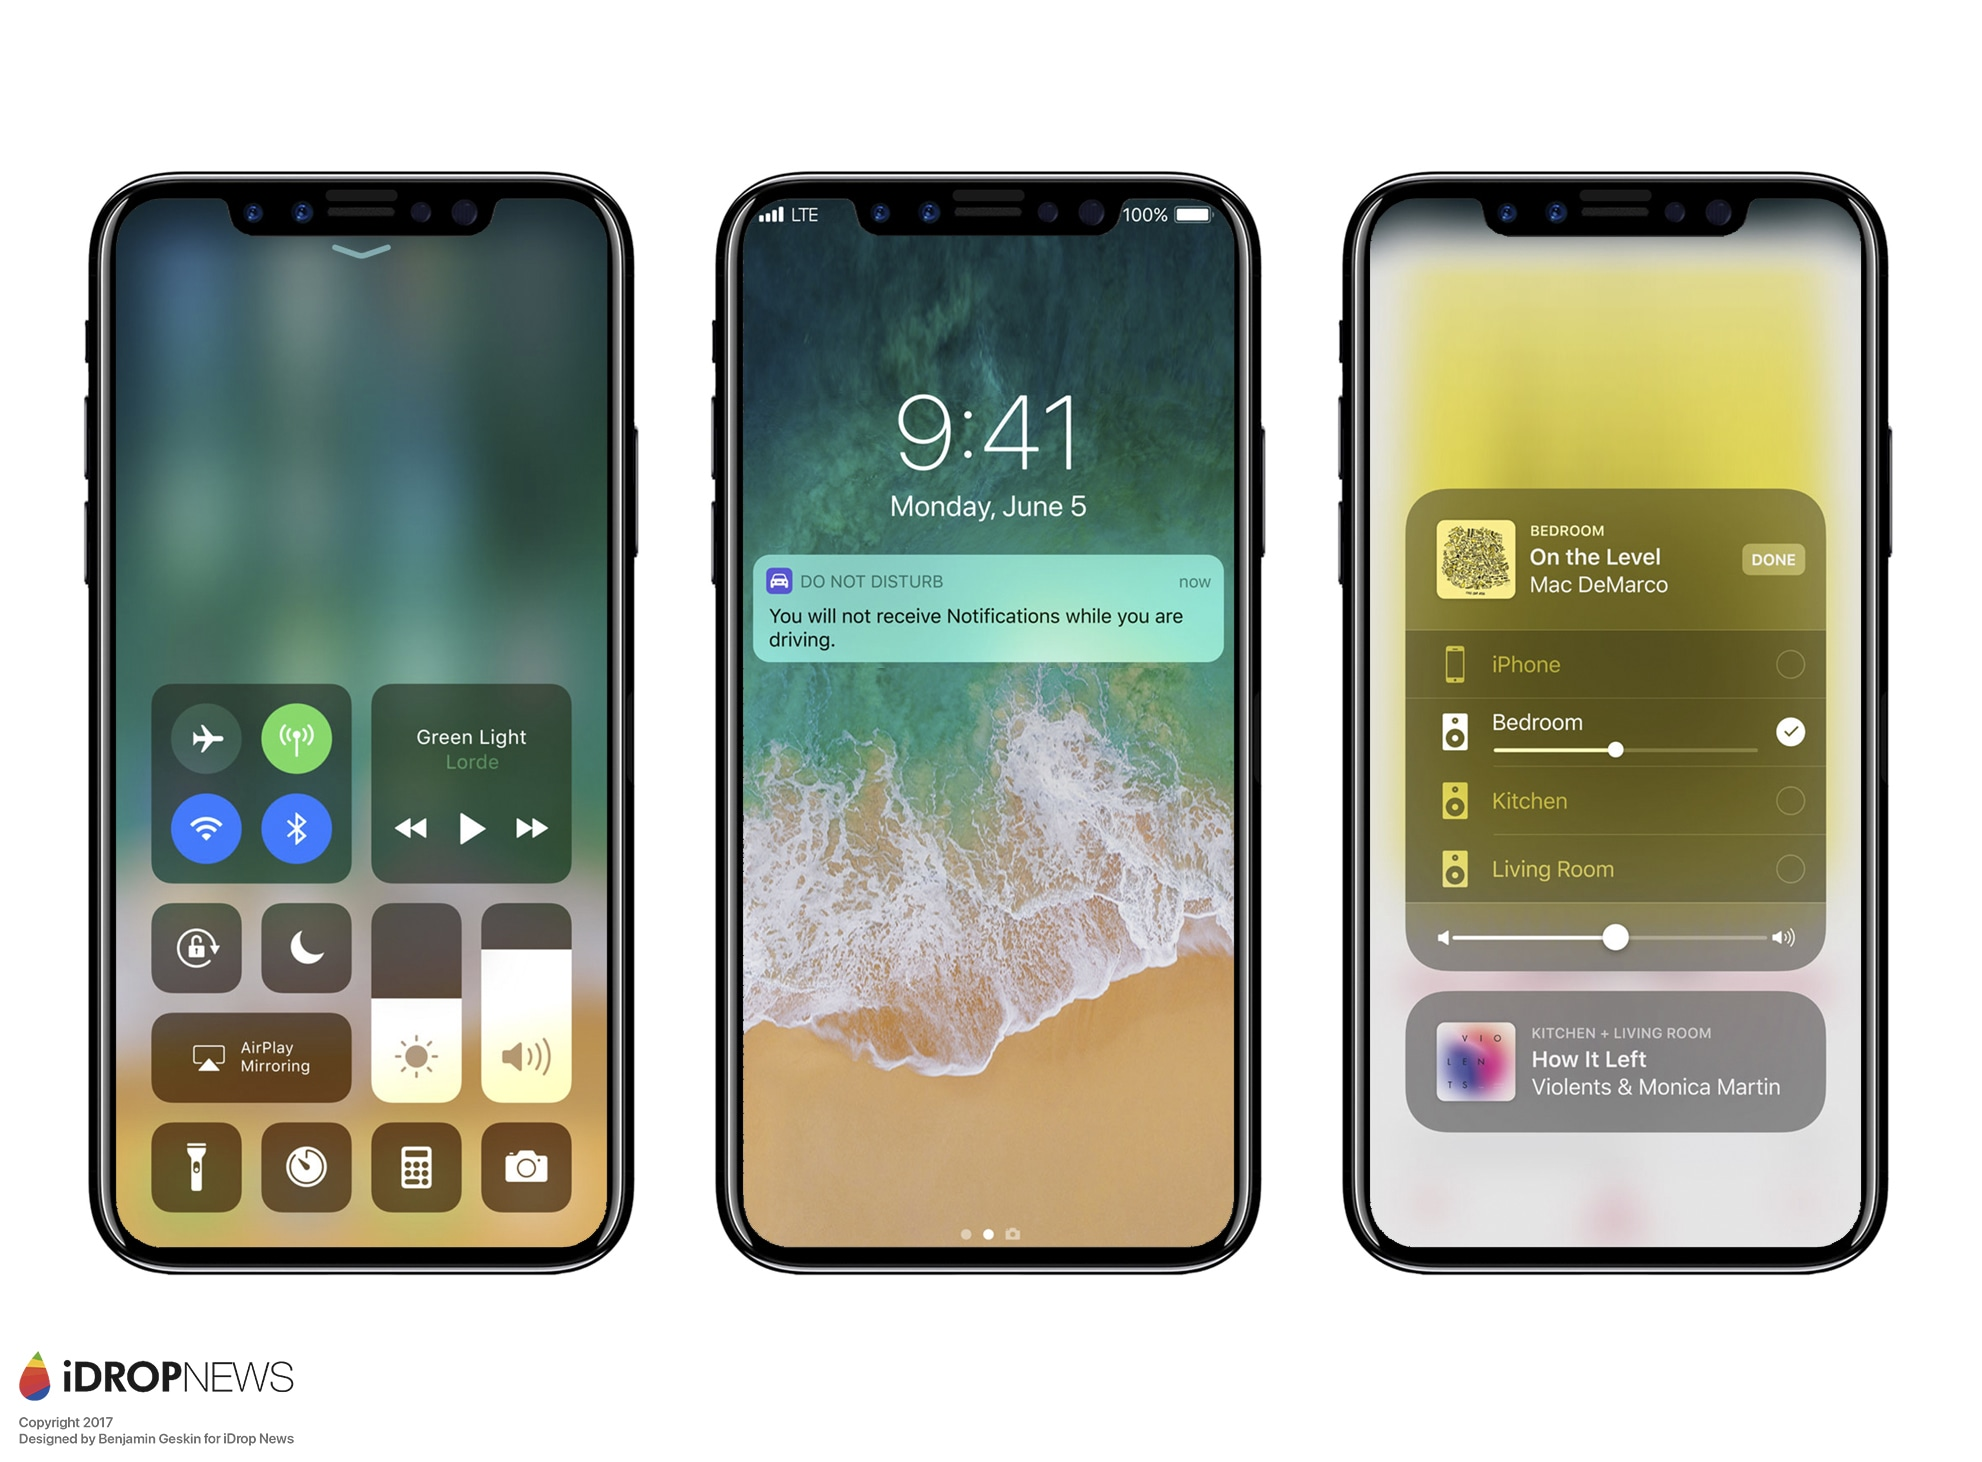 iphone-x-idrop-news-1-1_cfbn